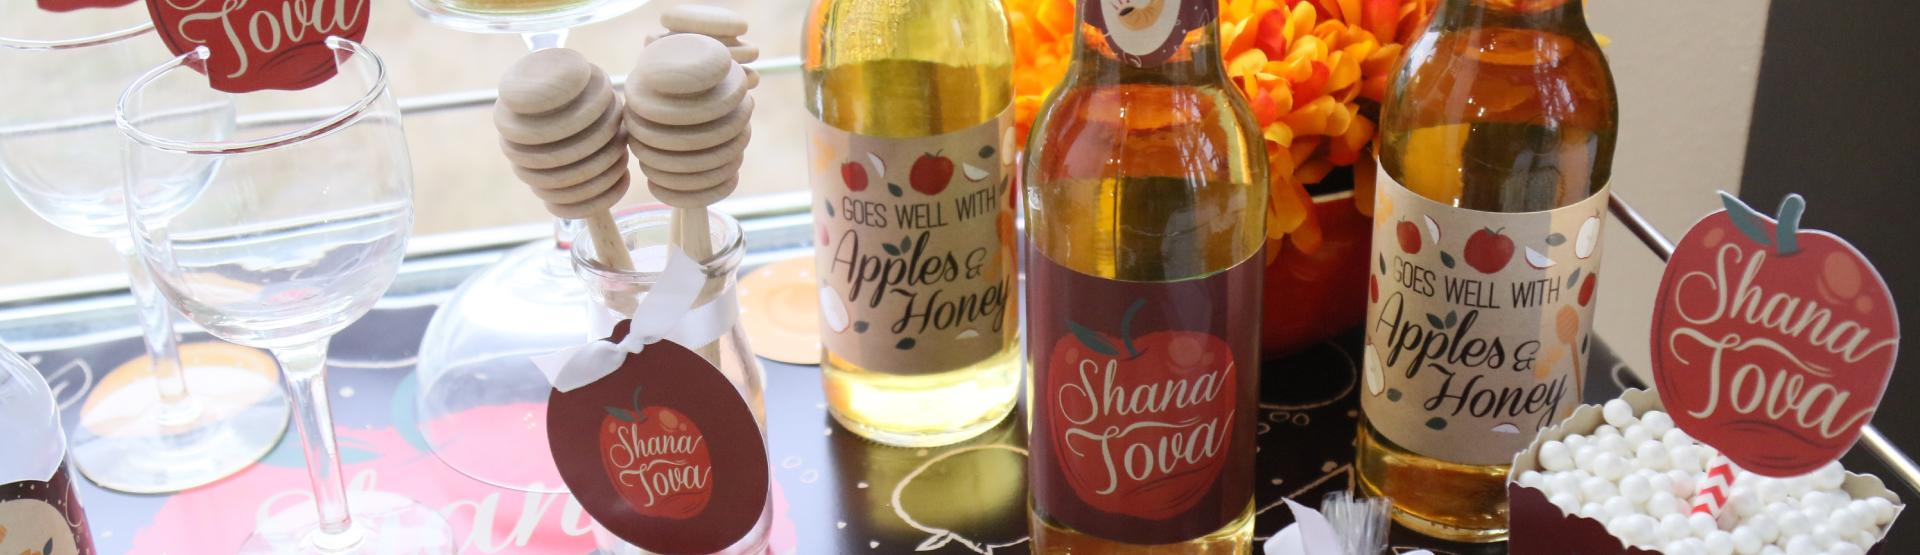 Rosh Hashanah - Jewish New Year Party Ideas